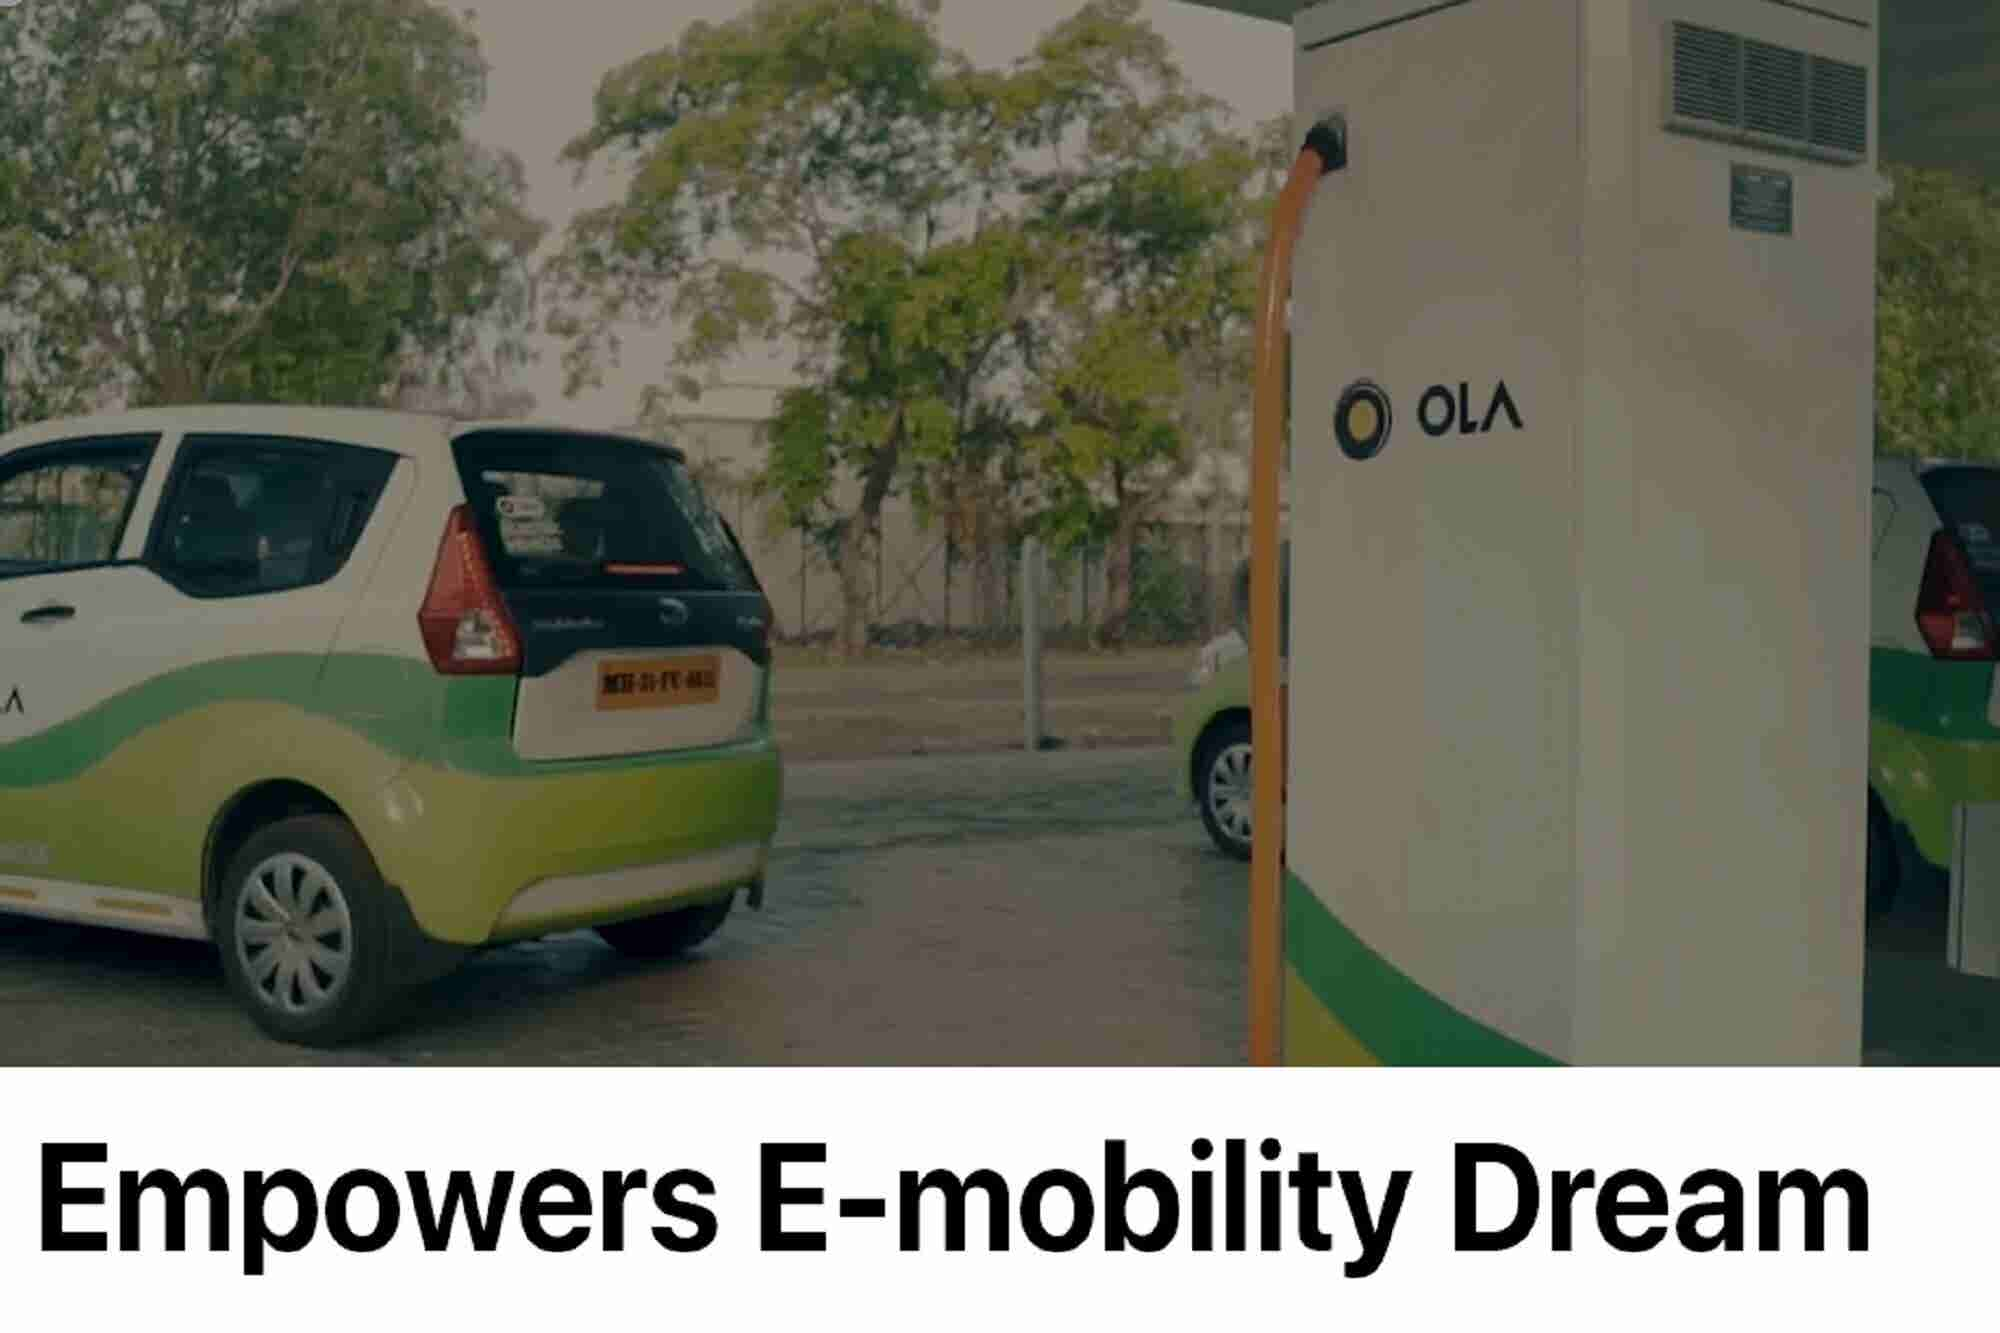 Funding Friday: Ola's E-Mobility Dream Empowered, So is AI-driven Cancer Detector NIRAMAI